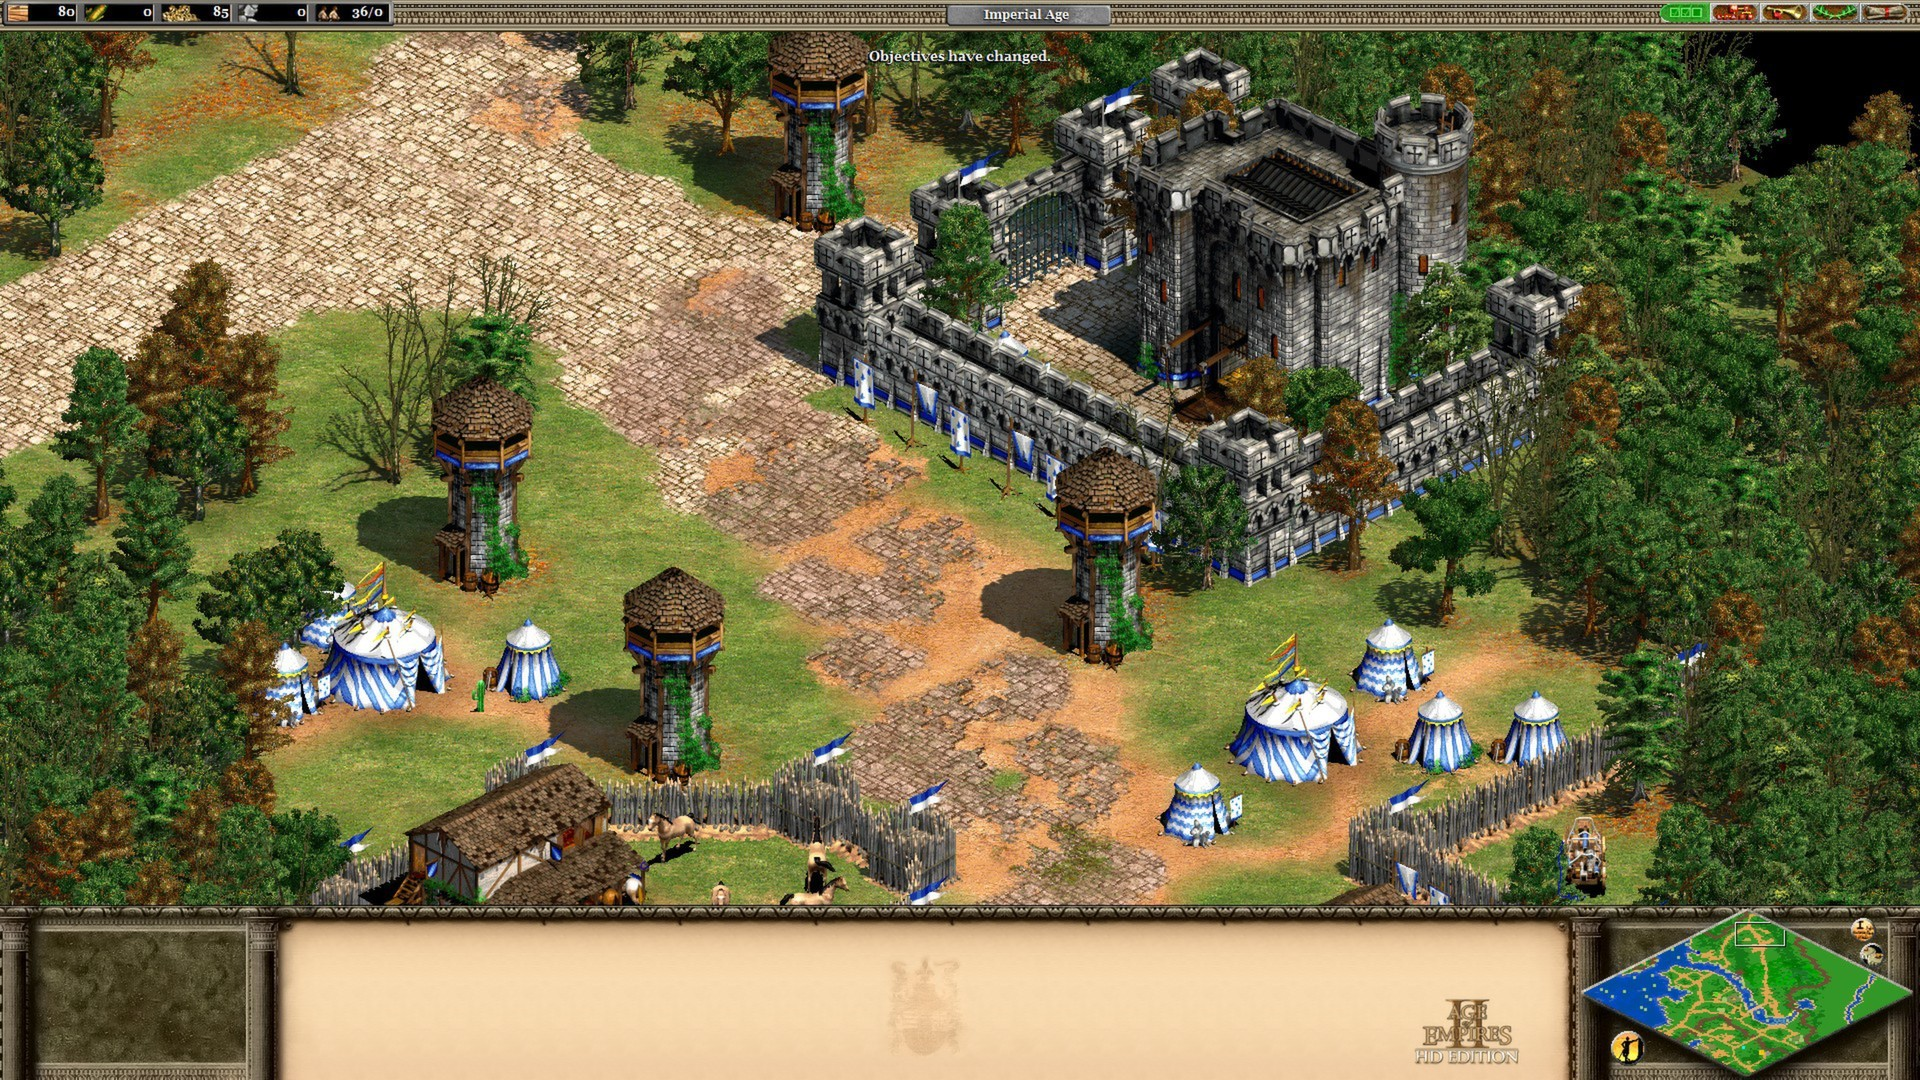 ... Age of Empires II HD: The Age of Kings screenshot 4 ...